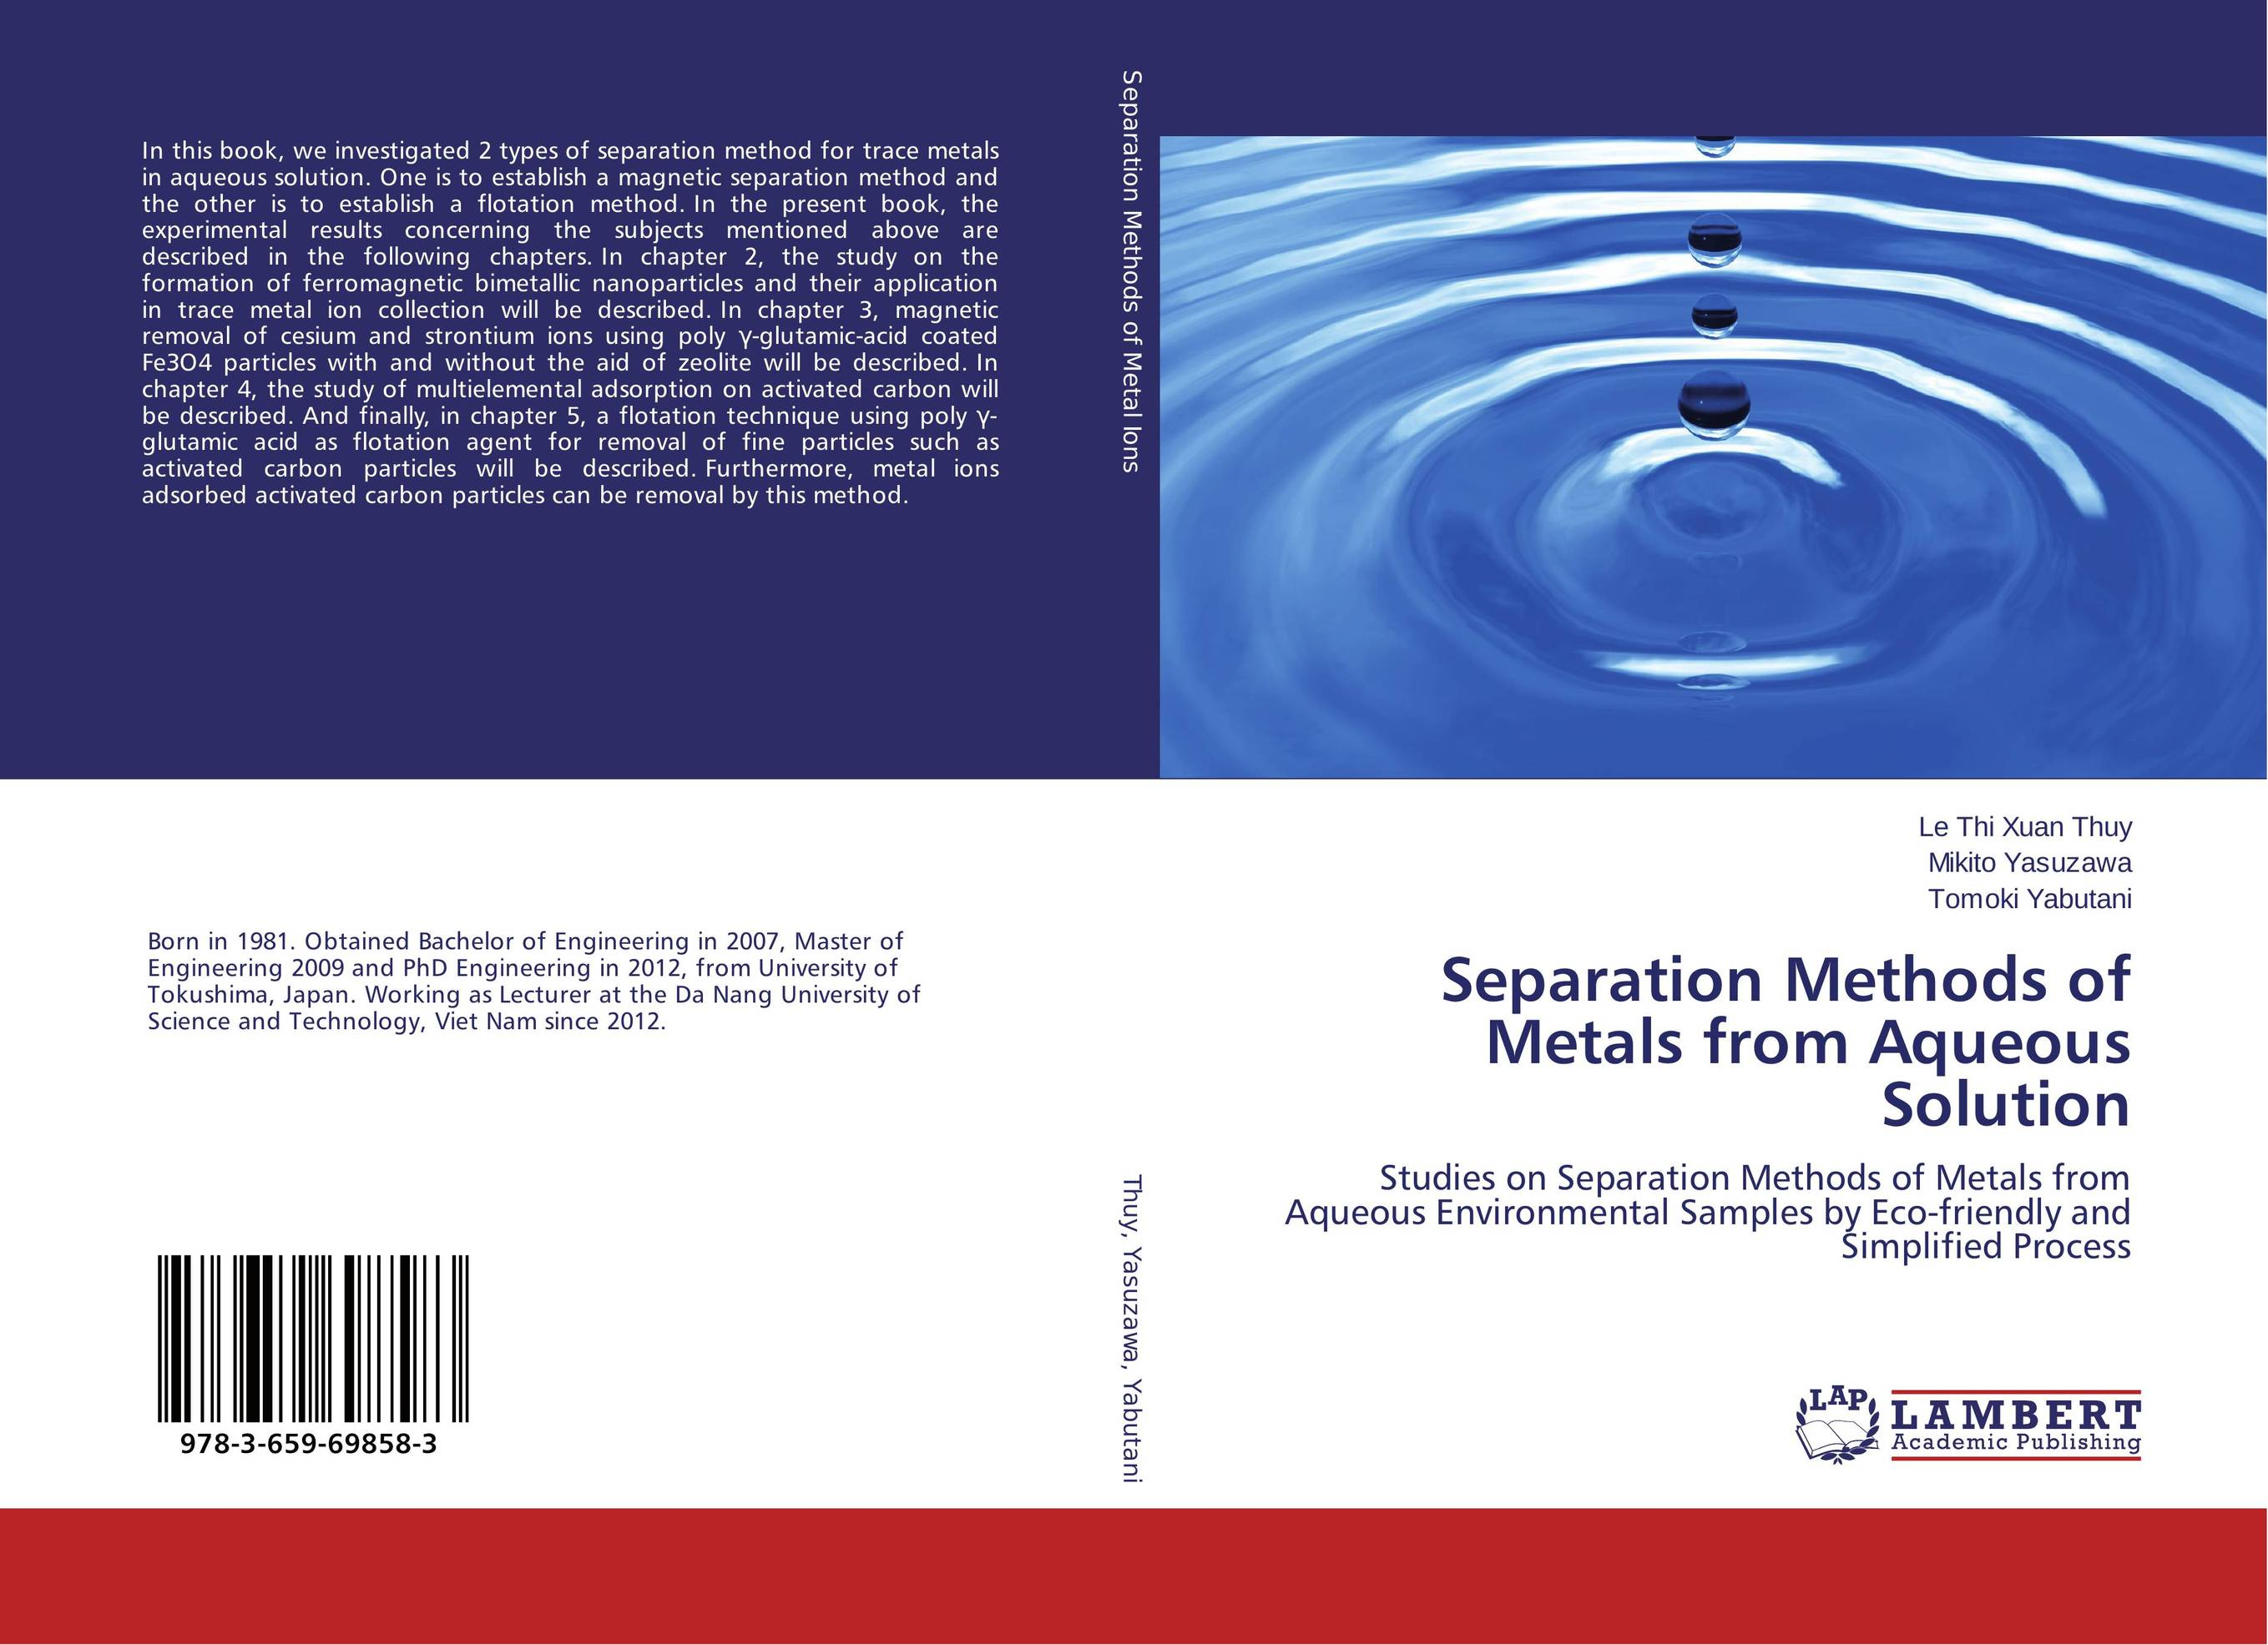 Separation Methods of Metals from Aqueous Solution a novel separation technique using hydrotropes